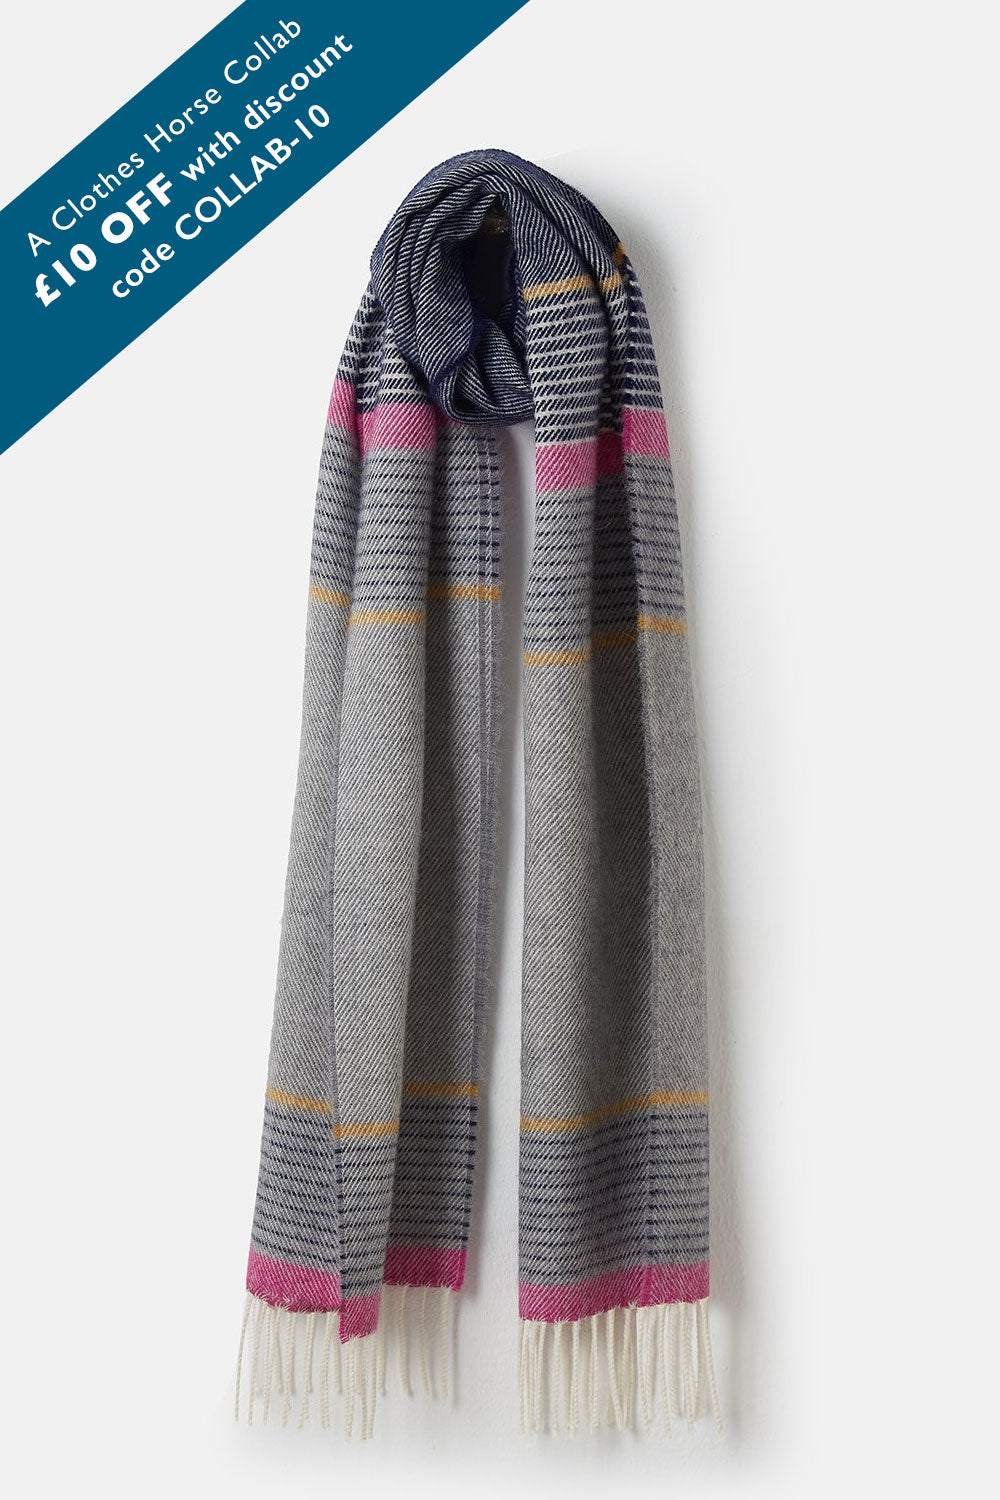 Merino Scarf - Night Sky Grape Stripe